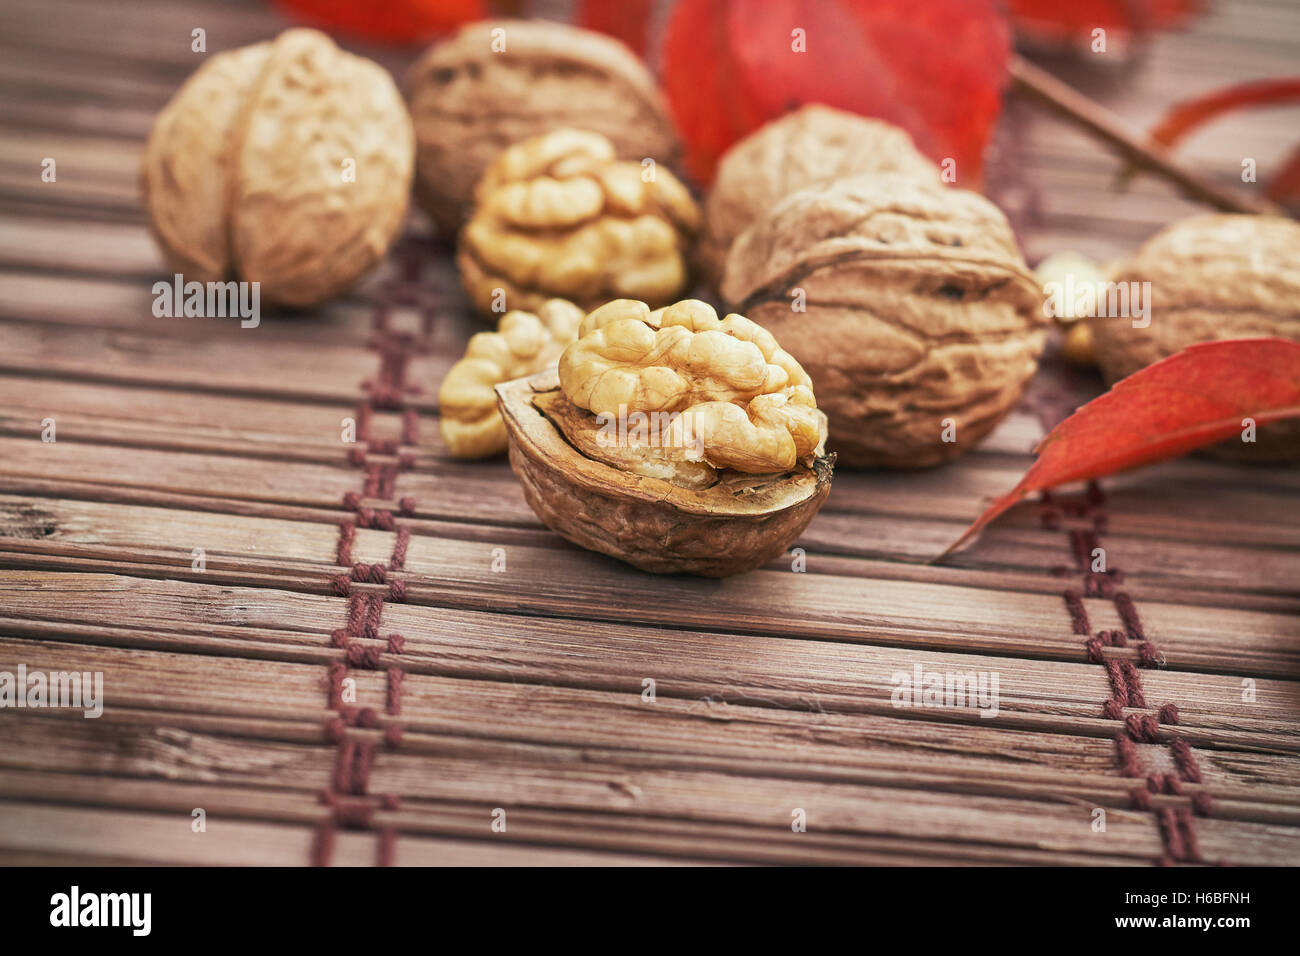 Walnuts on wooden background with copy space Stock Photo